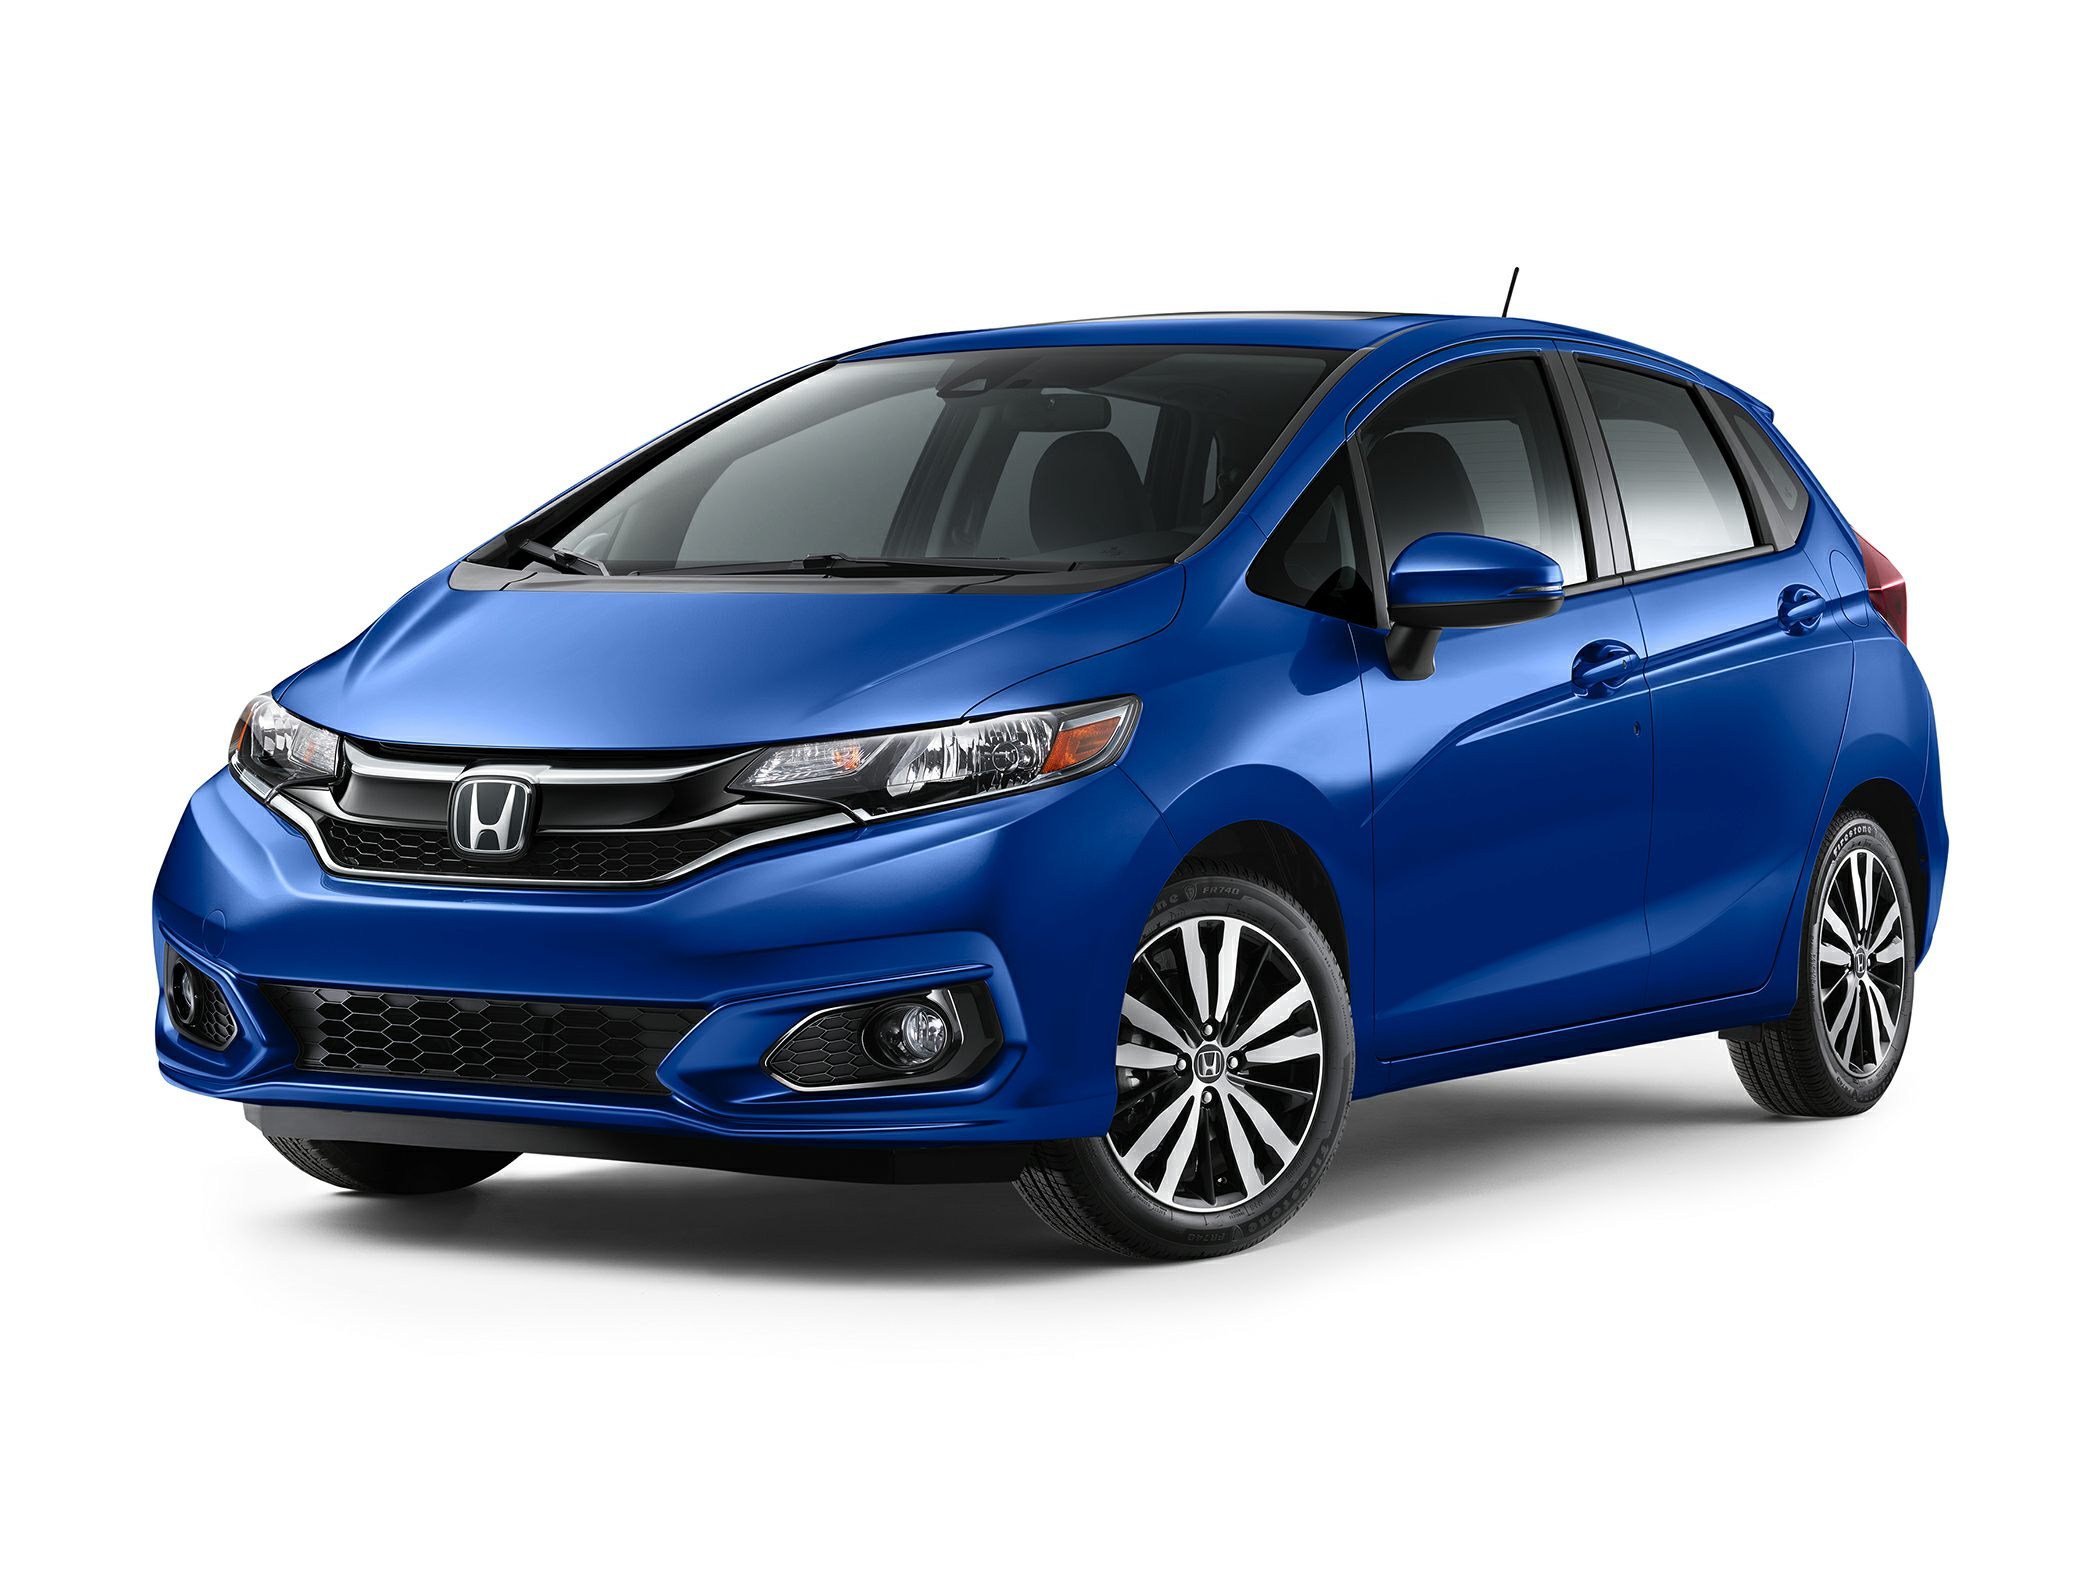 2018 honda fit deals prices incentives leases autos post for Honda crv 2018 lease